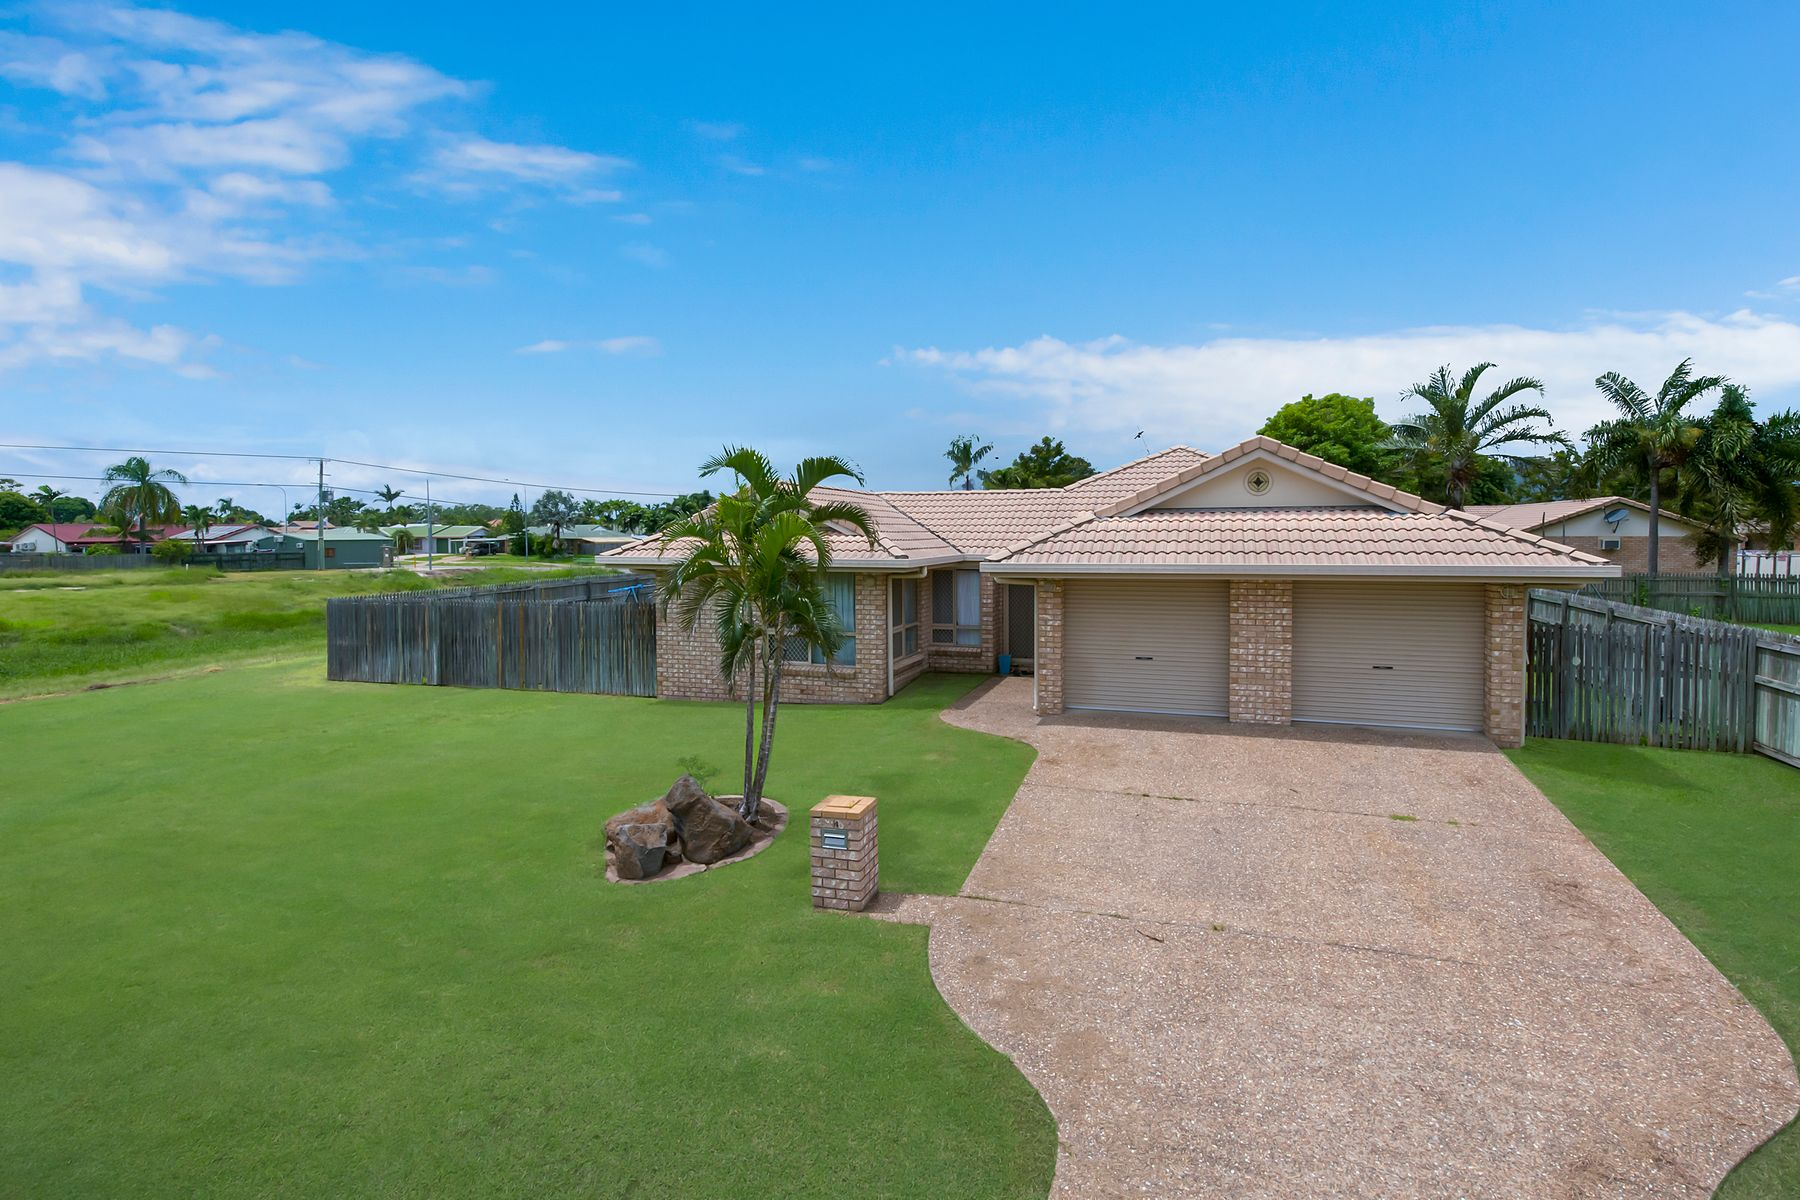 14 Santa Fe Way, Kirwan, QLD 4817